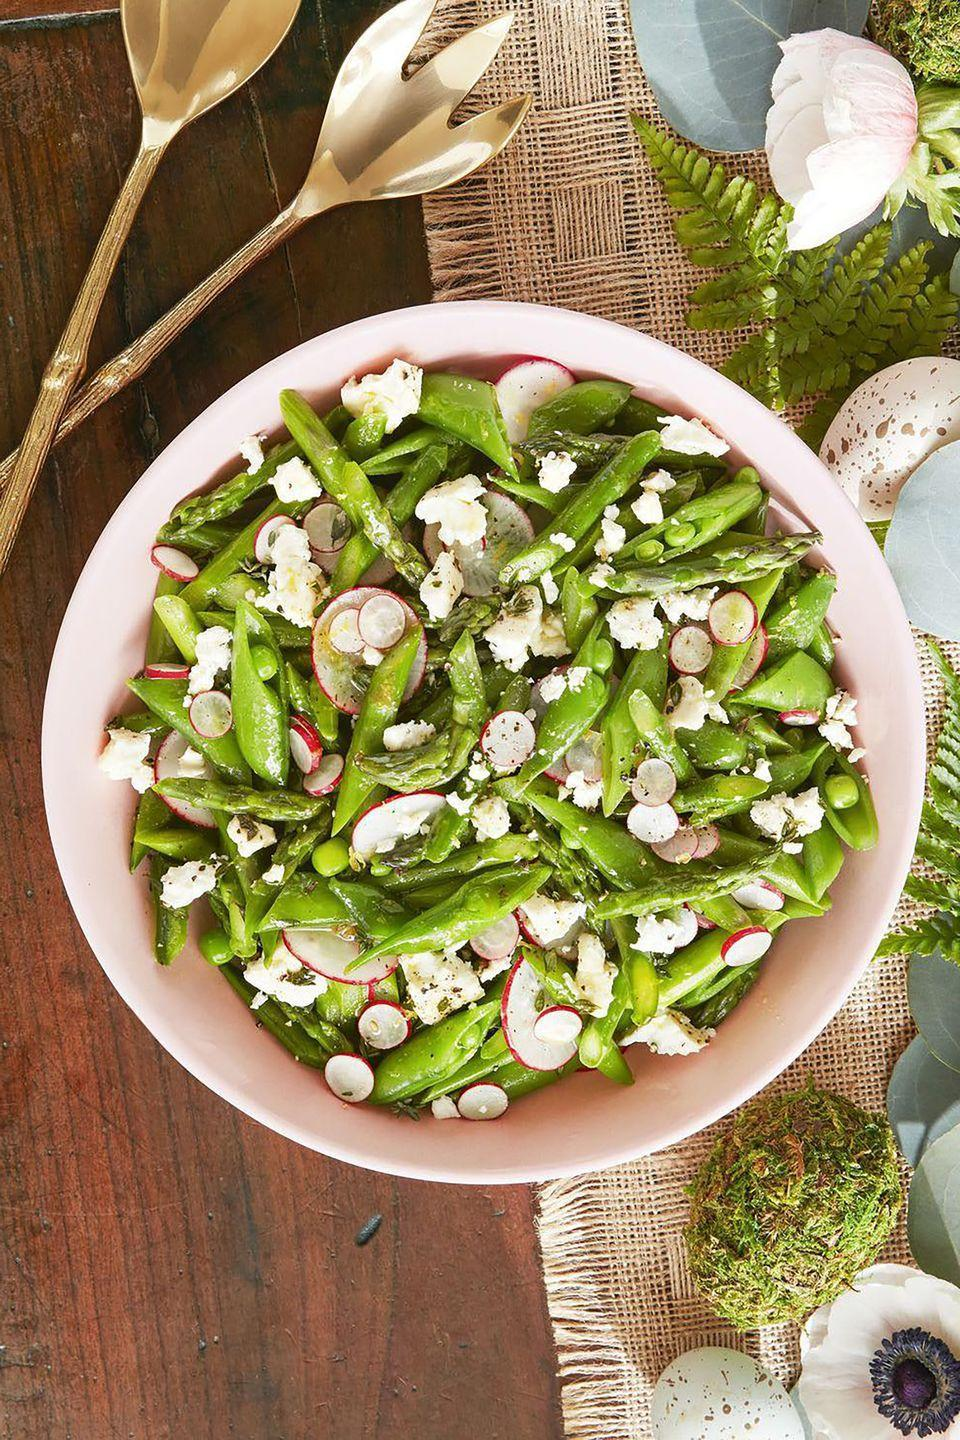 "<p>Even your greens need a hint of cheese—or in this case, a whole block. </p><p><strong><a href=""https://www.countryliving.com/food-drinks/a19041669/asparagus-snap-pea-and-radish-salad-recipe/"" rel=""nofollow noopener"" target=""_blank"" data-ylk=""slk:Get the recipe"" class=""link rapid-noclick-resp"">Get the recipe</a>.</strong></p>"